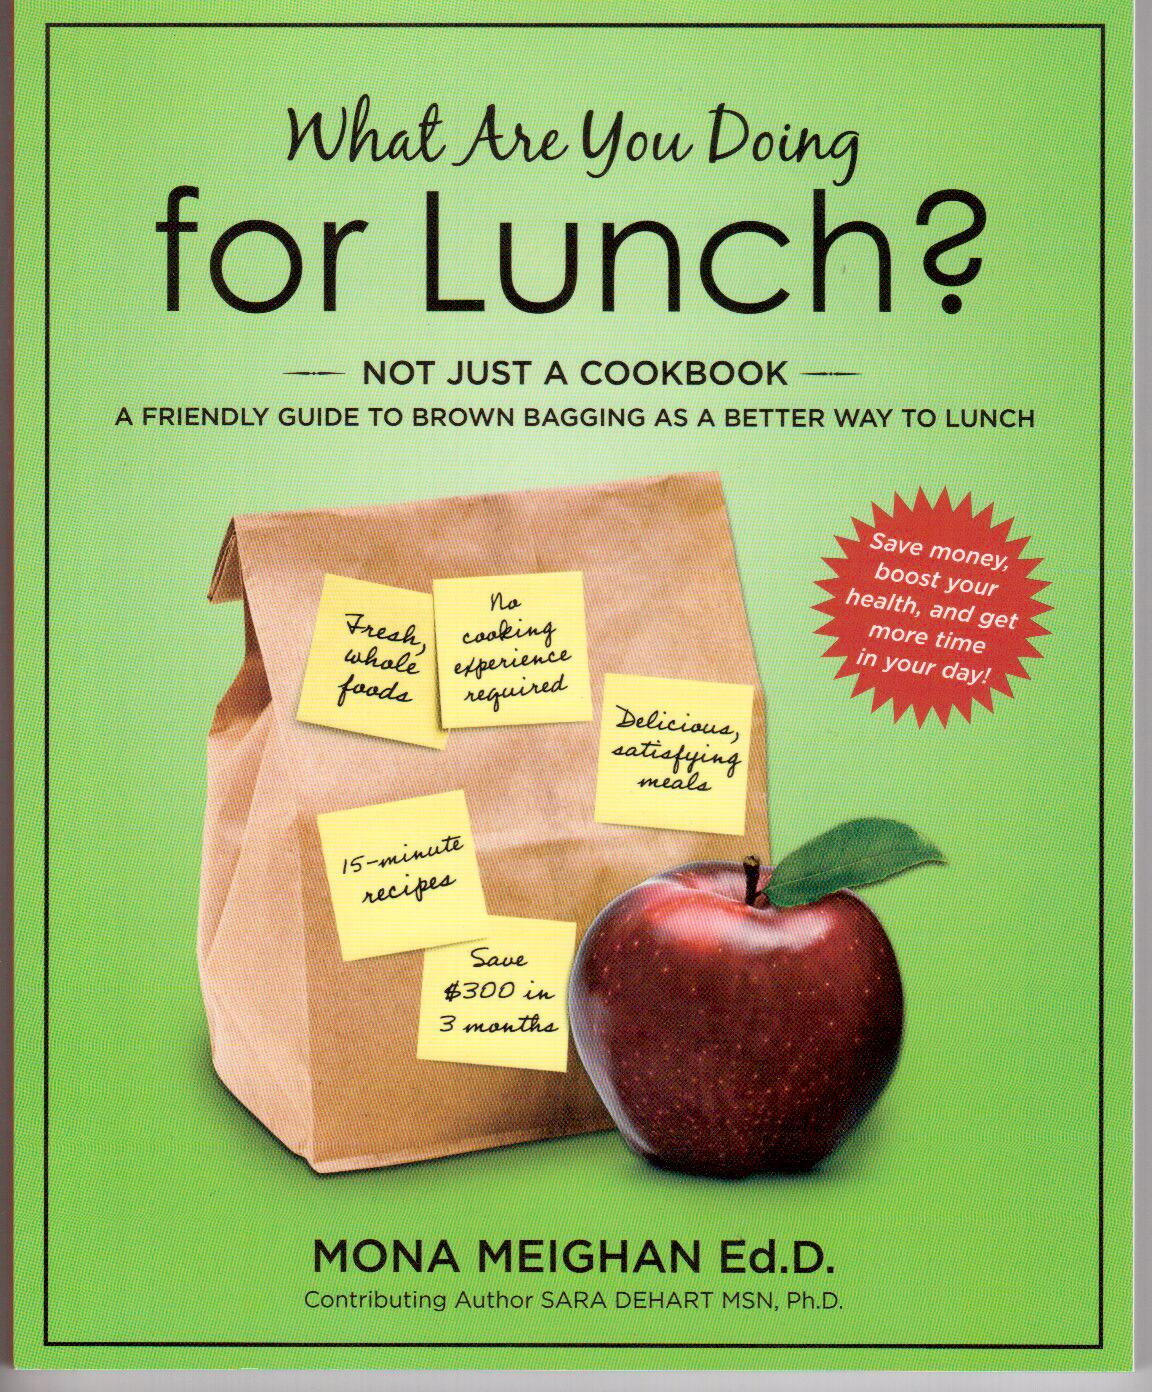 Book Cover School Lunches : Need lunch box ideas tips for fast fun healthy to go